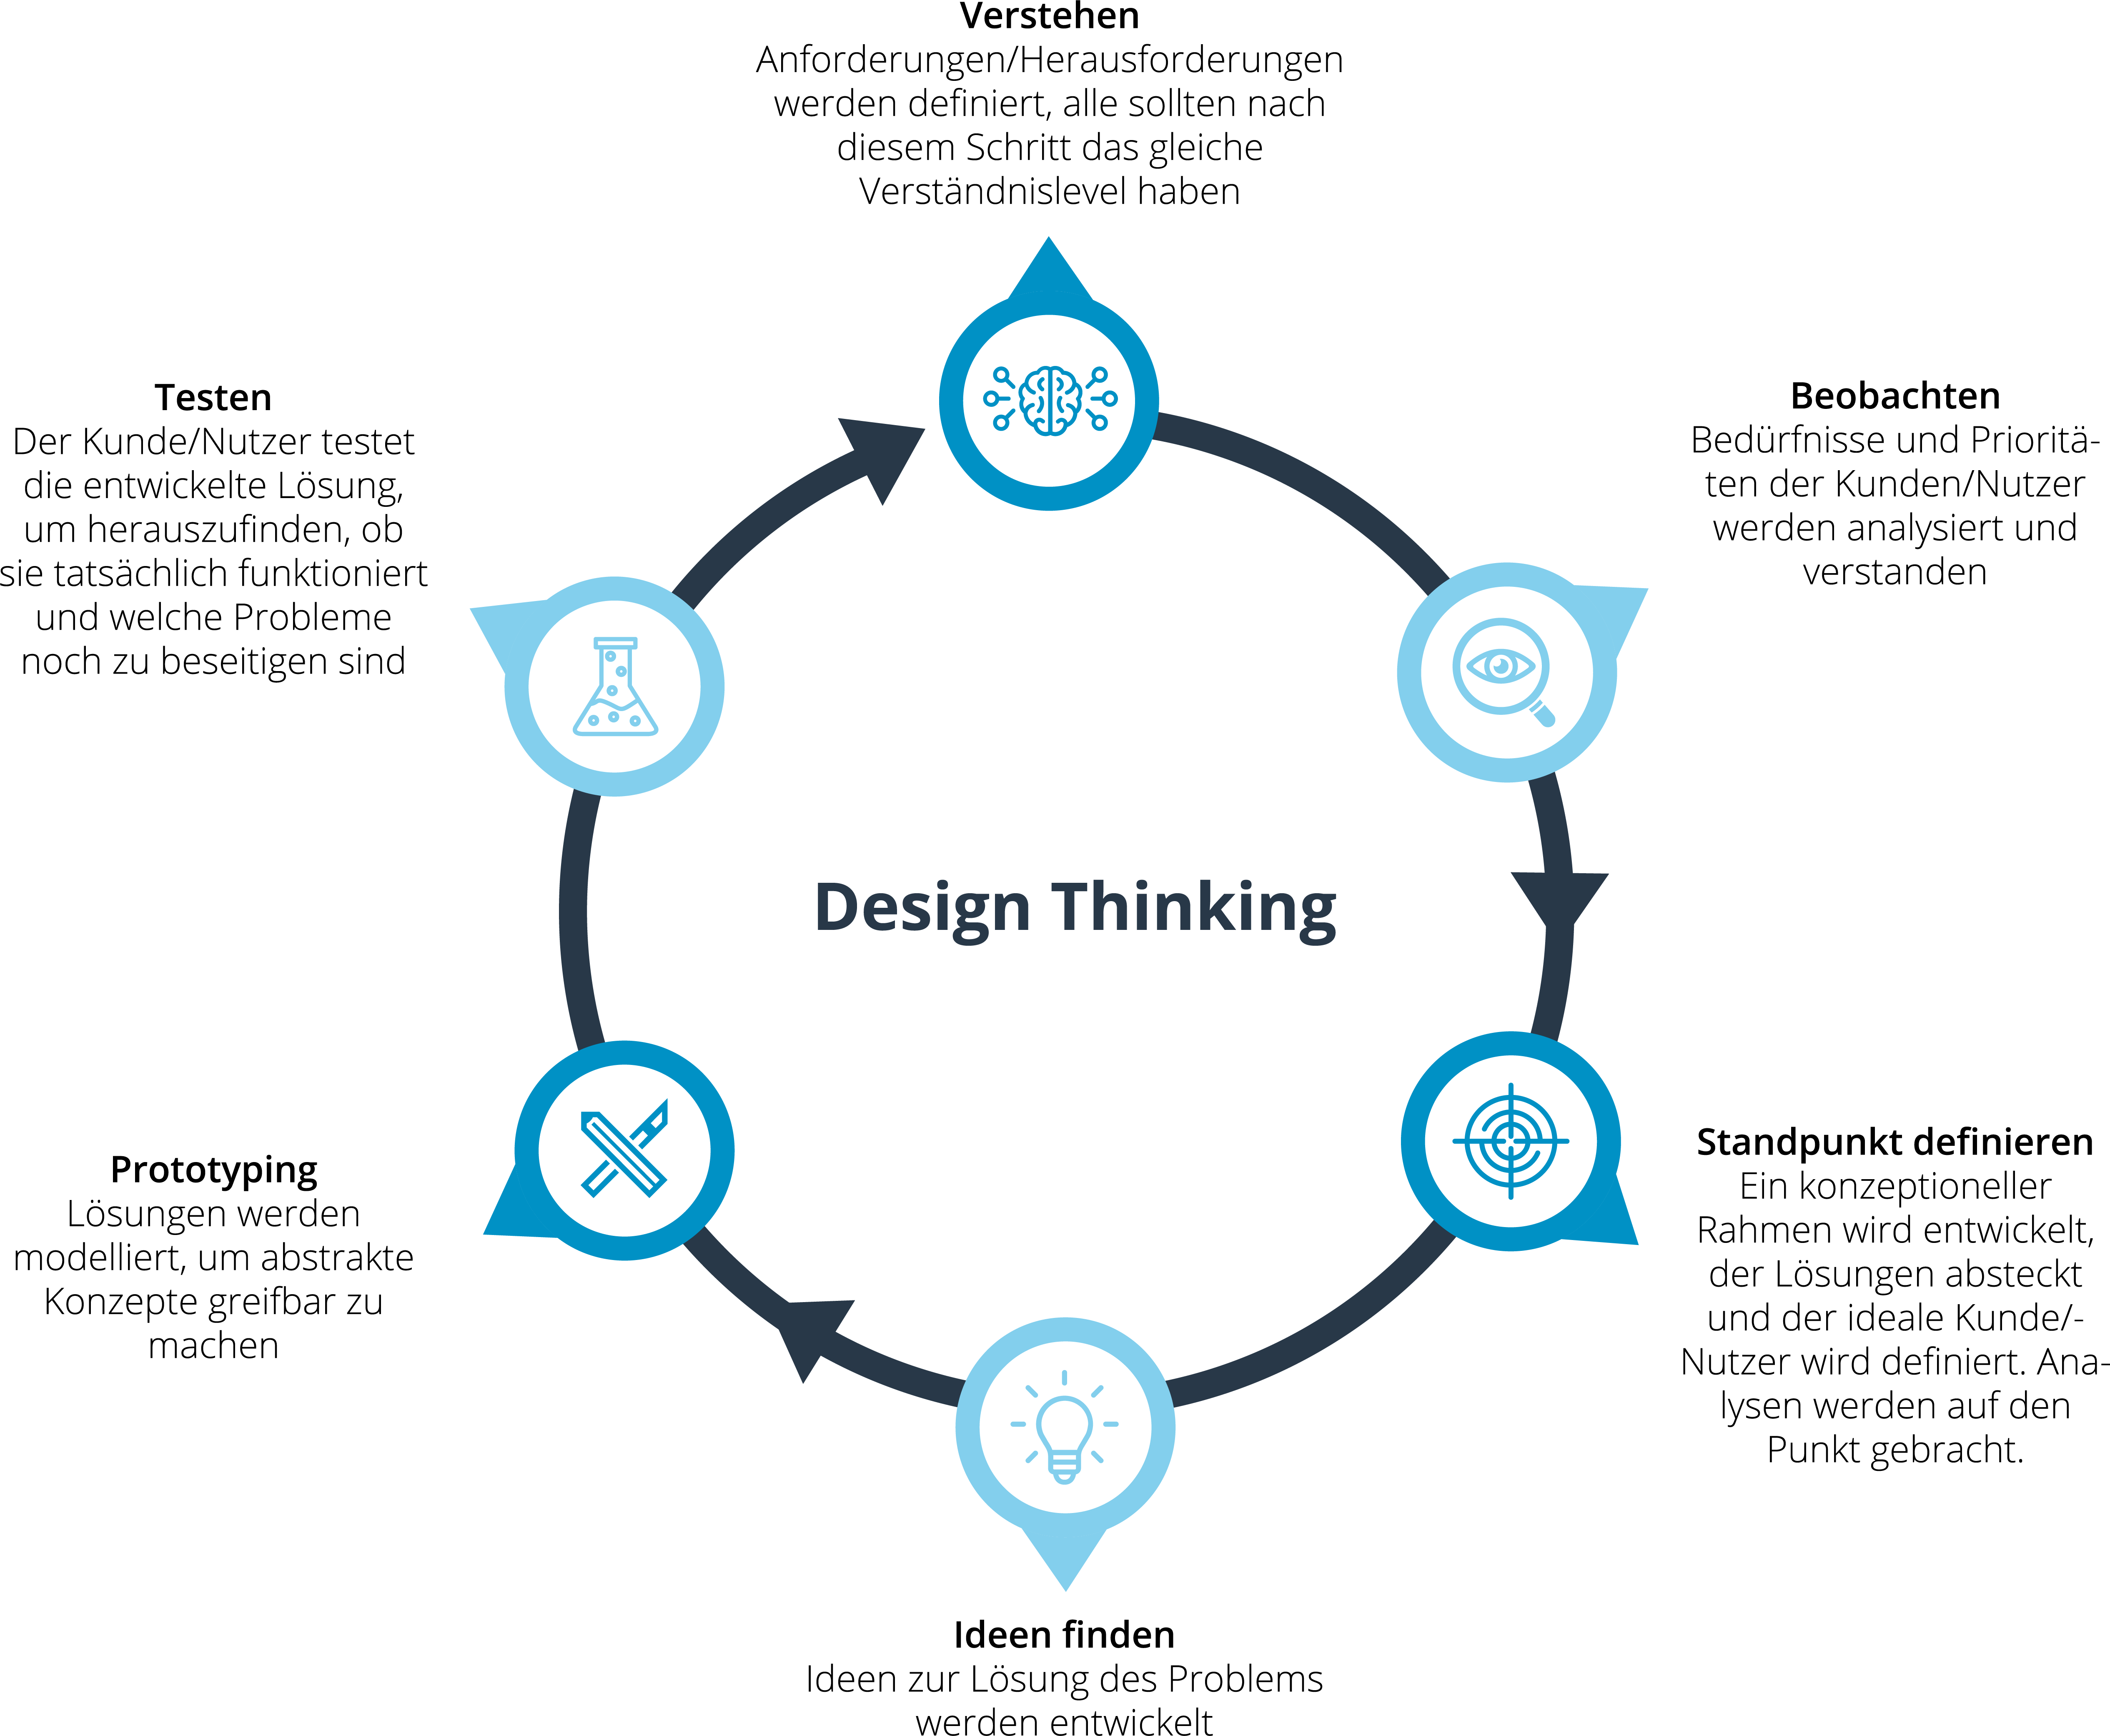 design thinking flow